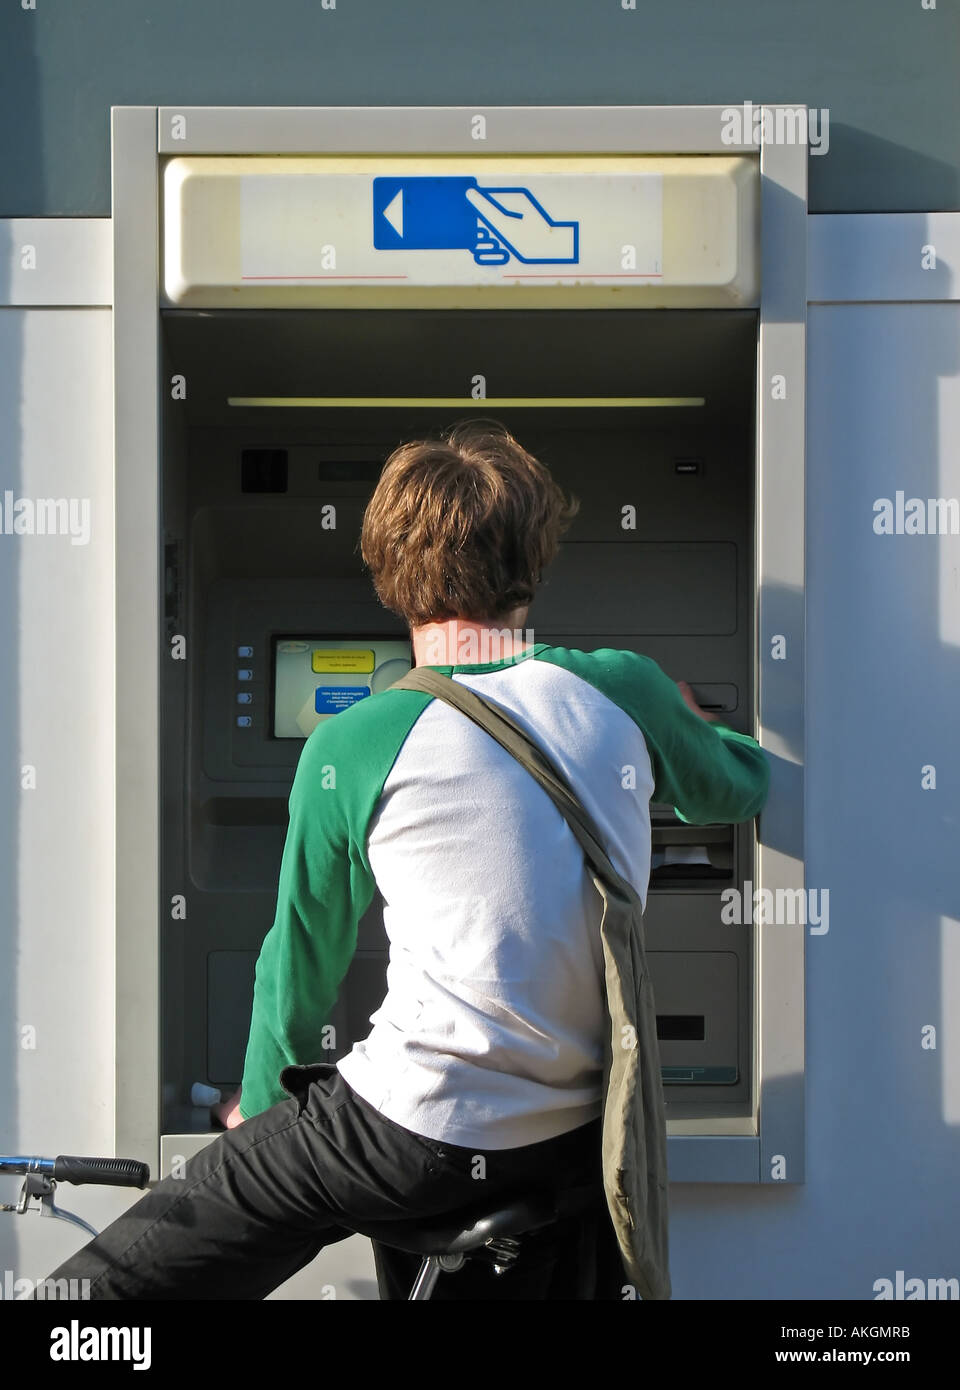 Rear view of a young man withdrawing cash at bank's ATM, Colmar, Alsace, France Stock Photo